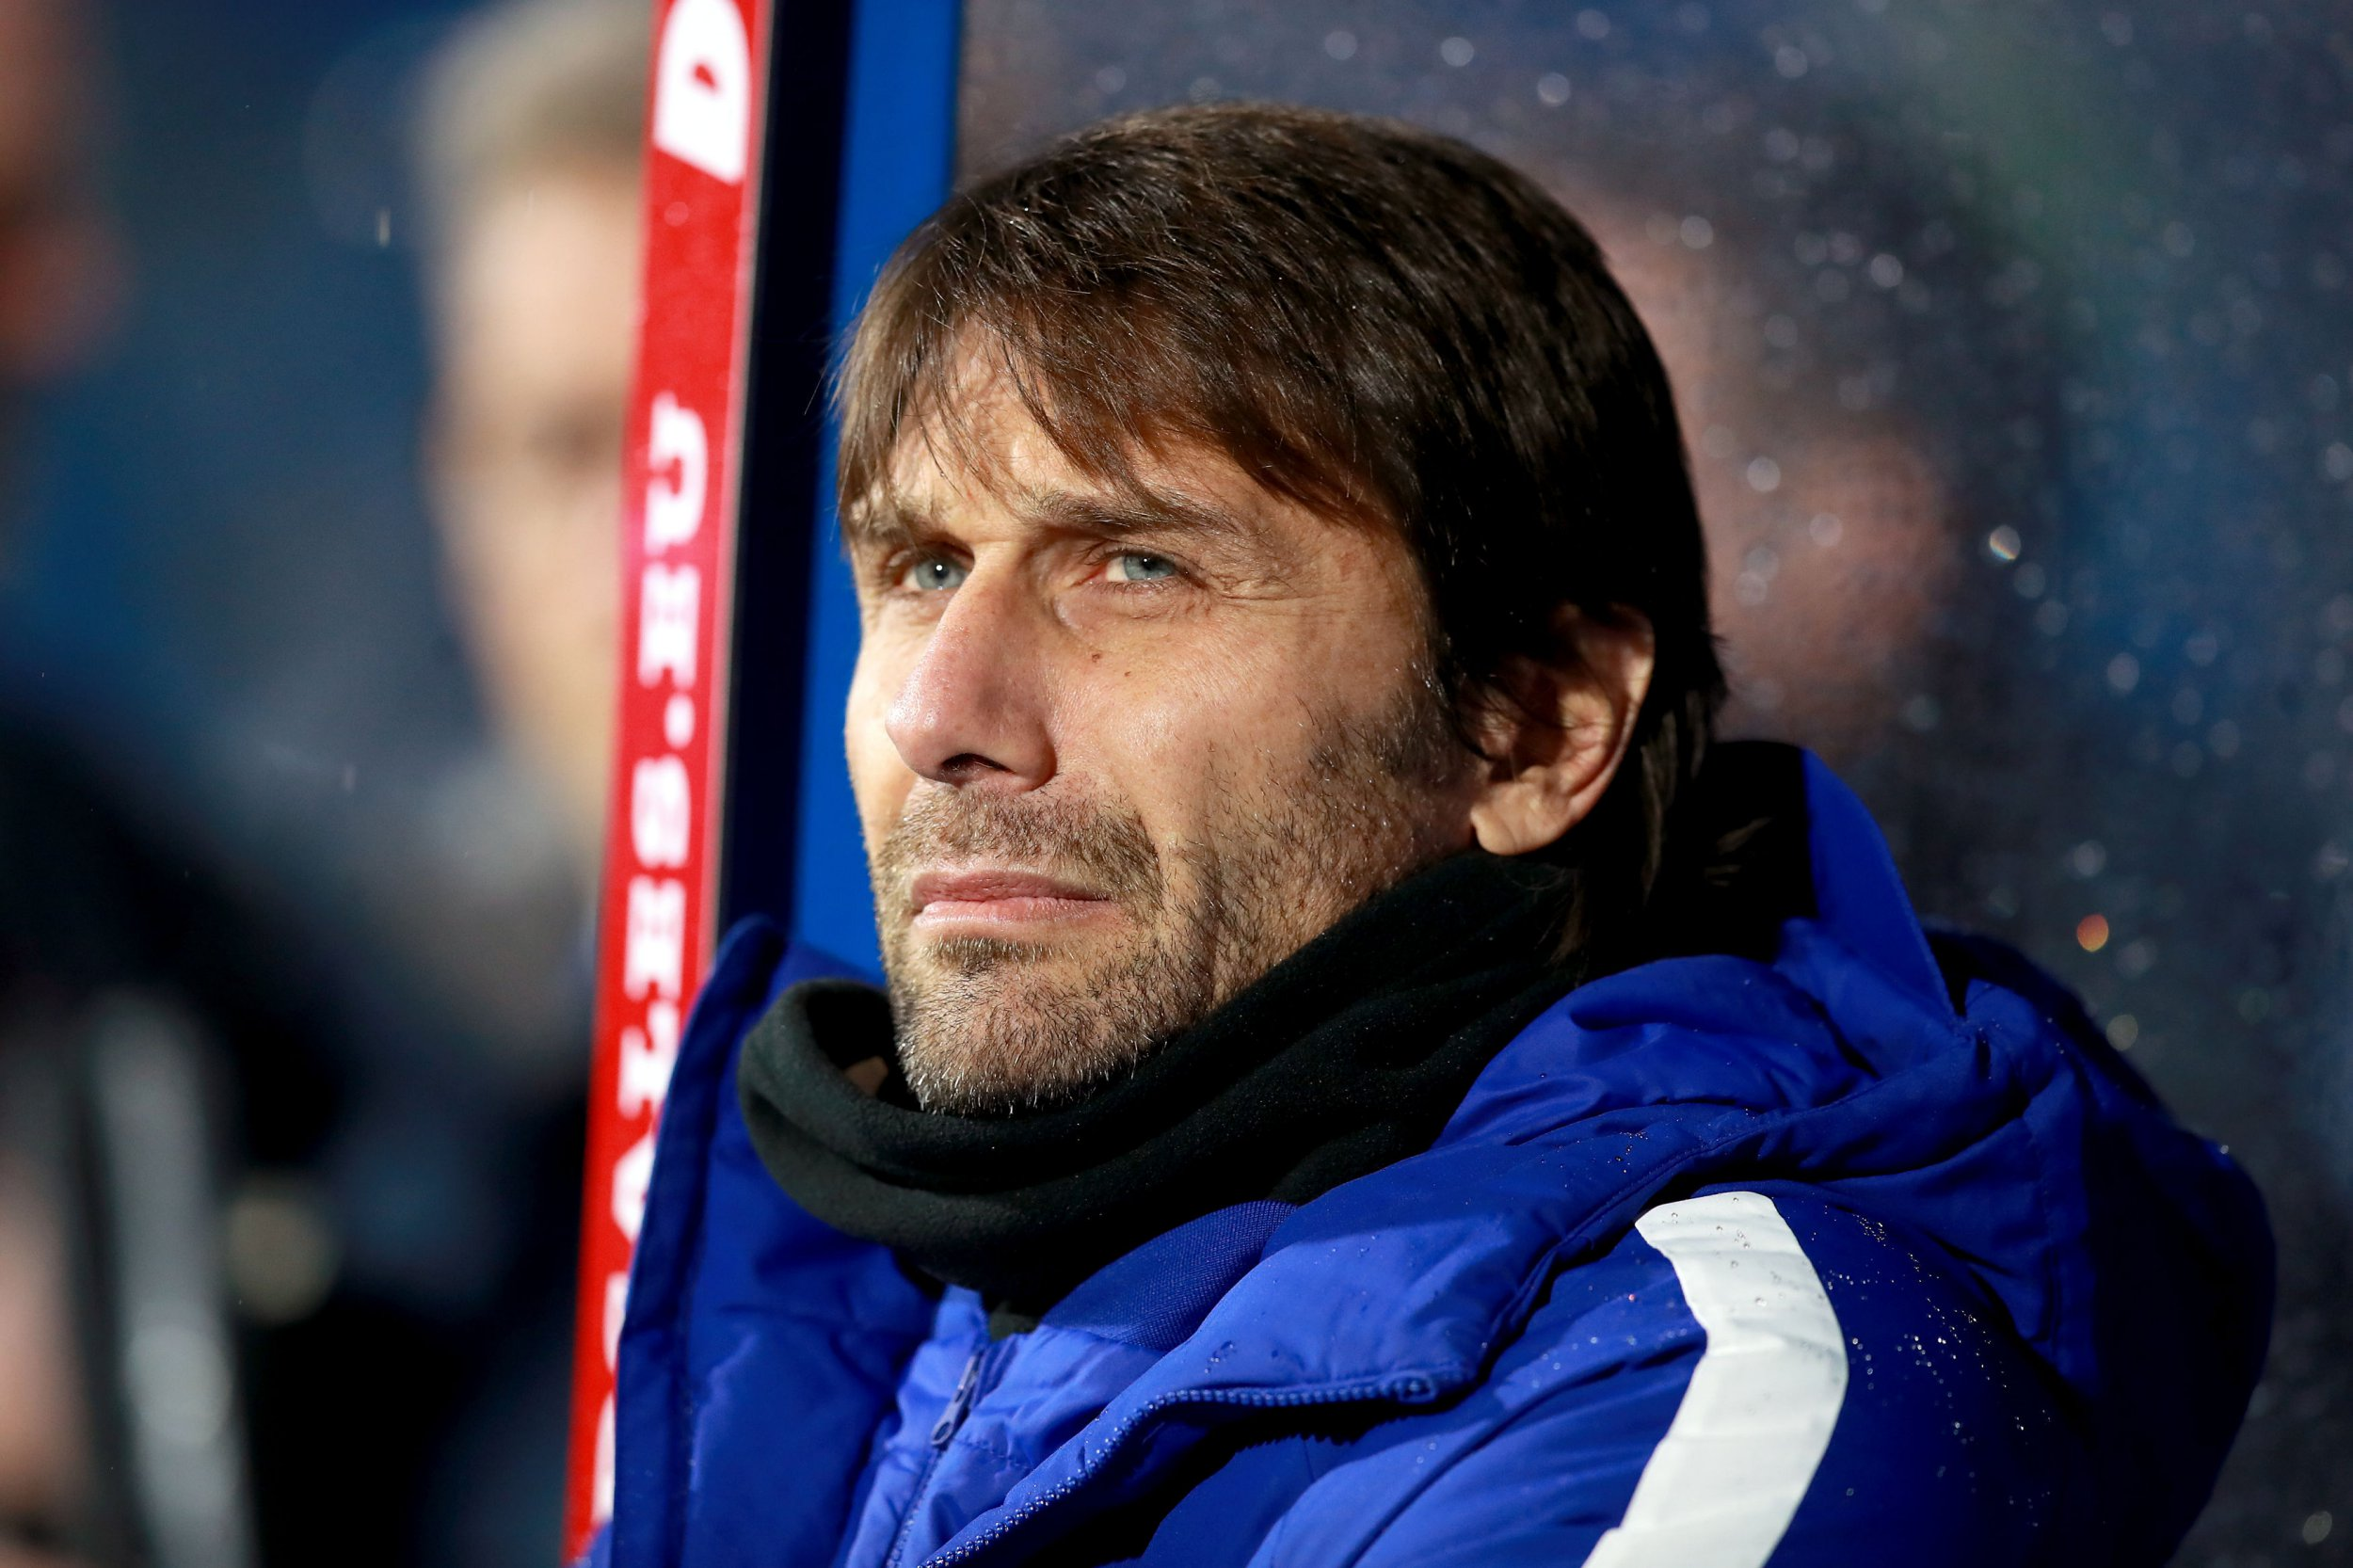 Antonio Conte uses Manchester United's shock Carabao Cup defeat as a warning to Chelsea